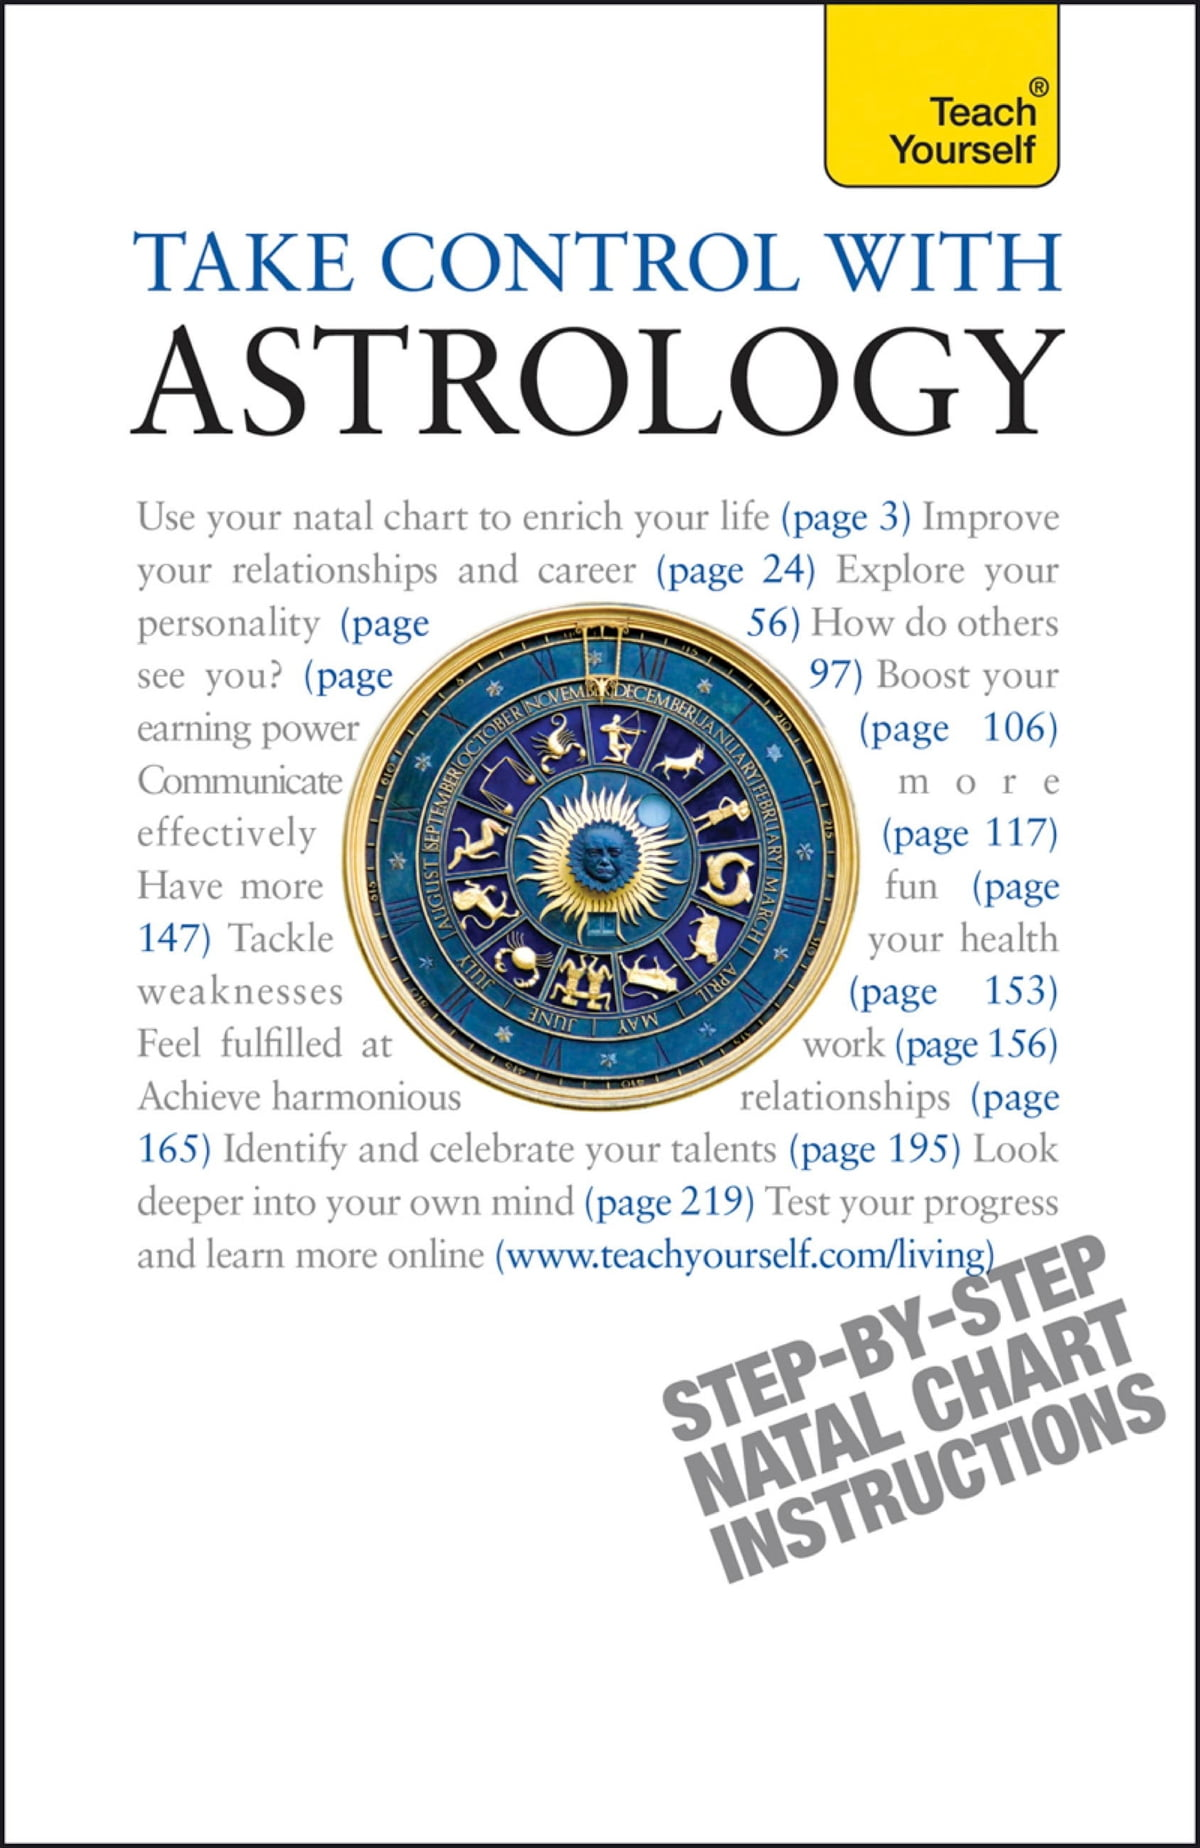 Take control with astrology teach yourself ebook by lisa tenzin take control with astrology teach yourself ebook by lisa tenzin dolma 9781444129724 rakuten kobo fandeluxe Epub